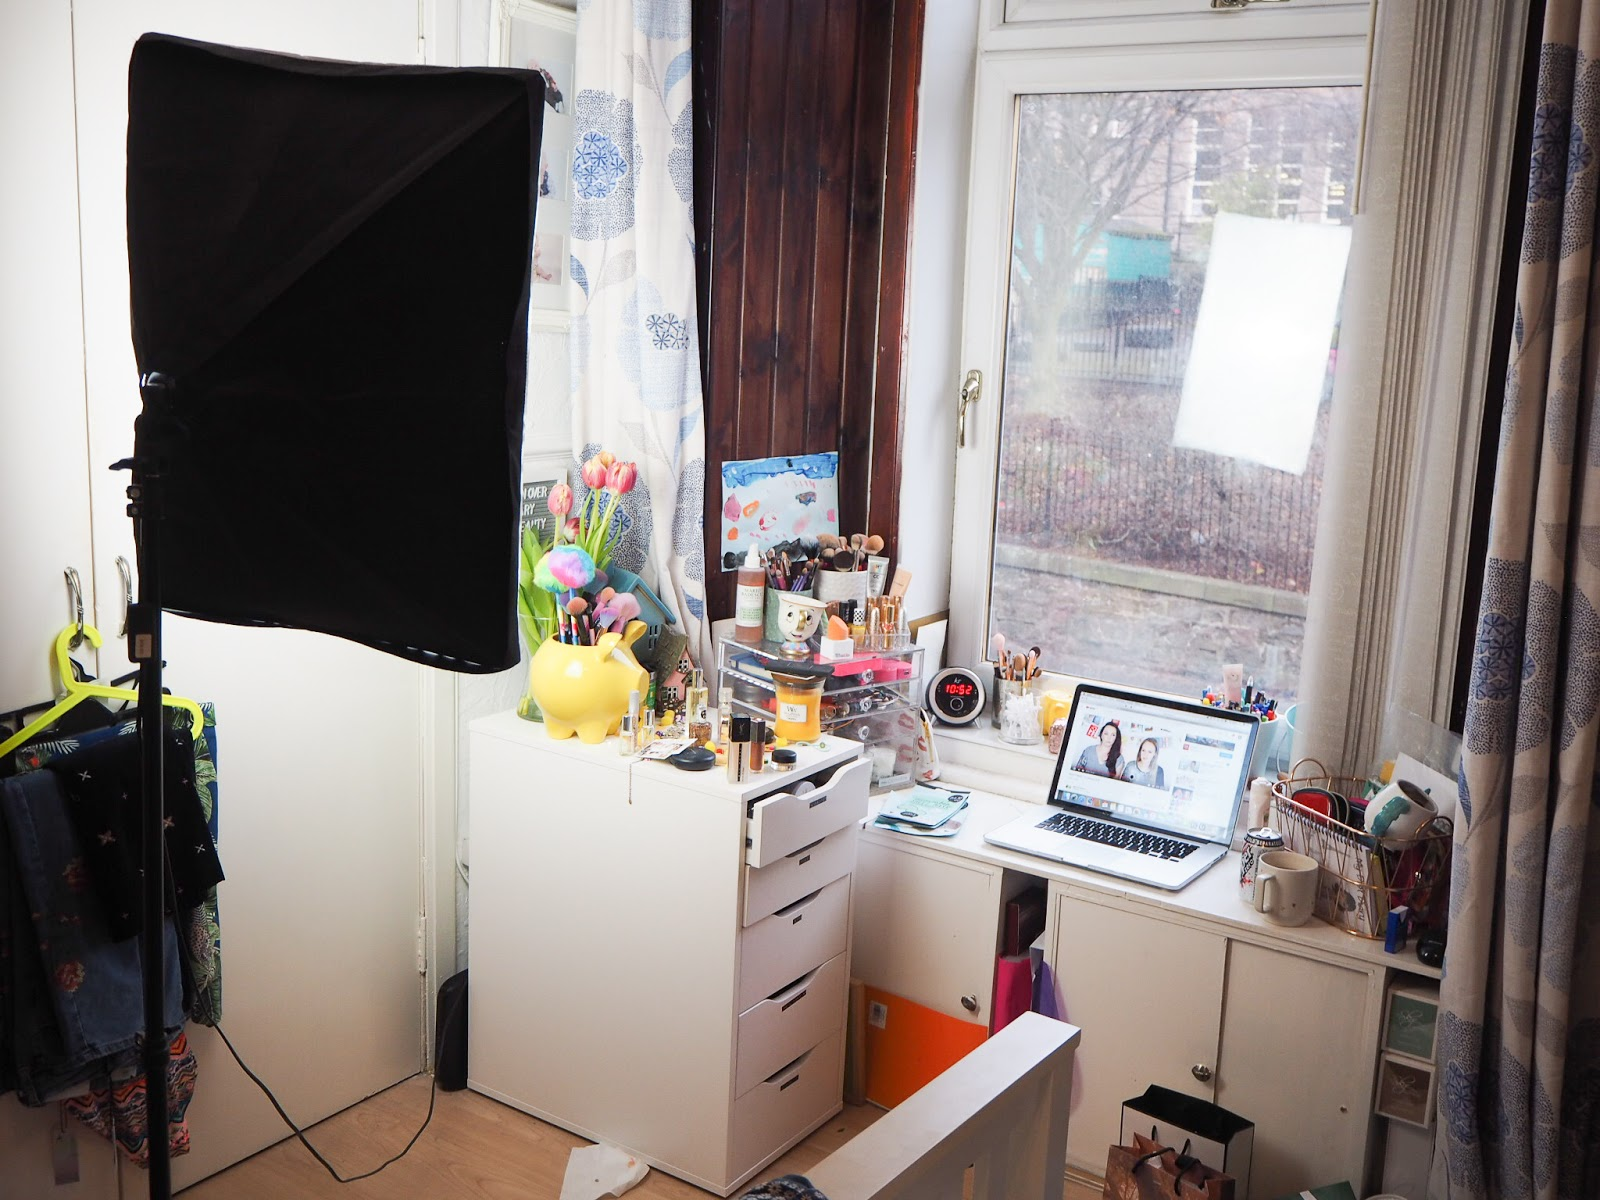 How To Take Kick Ass Photos - That Need Minimal Editing (Even in Winter!)